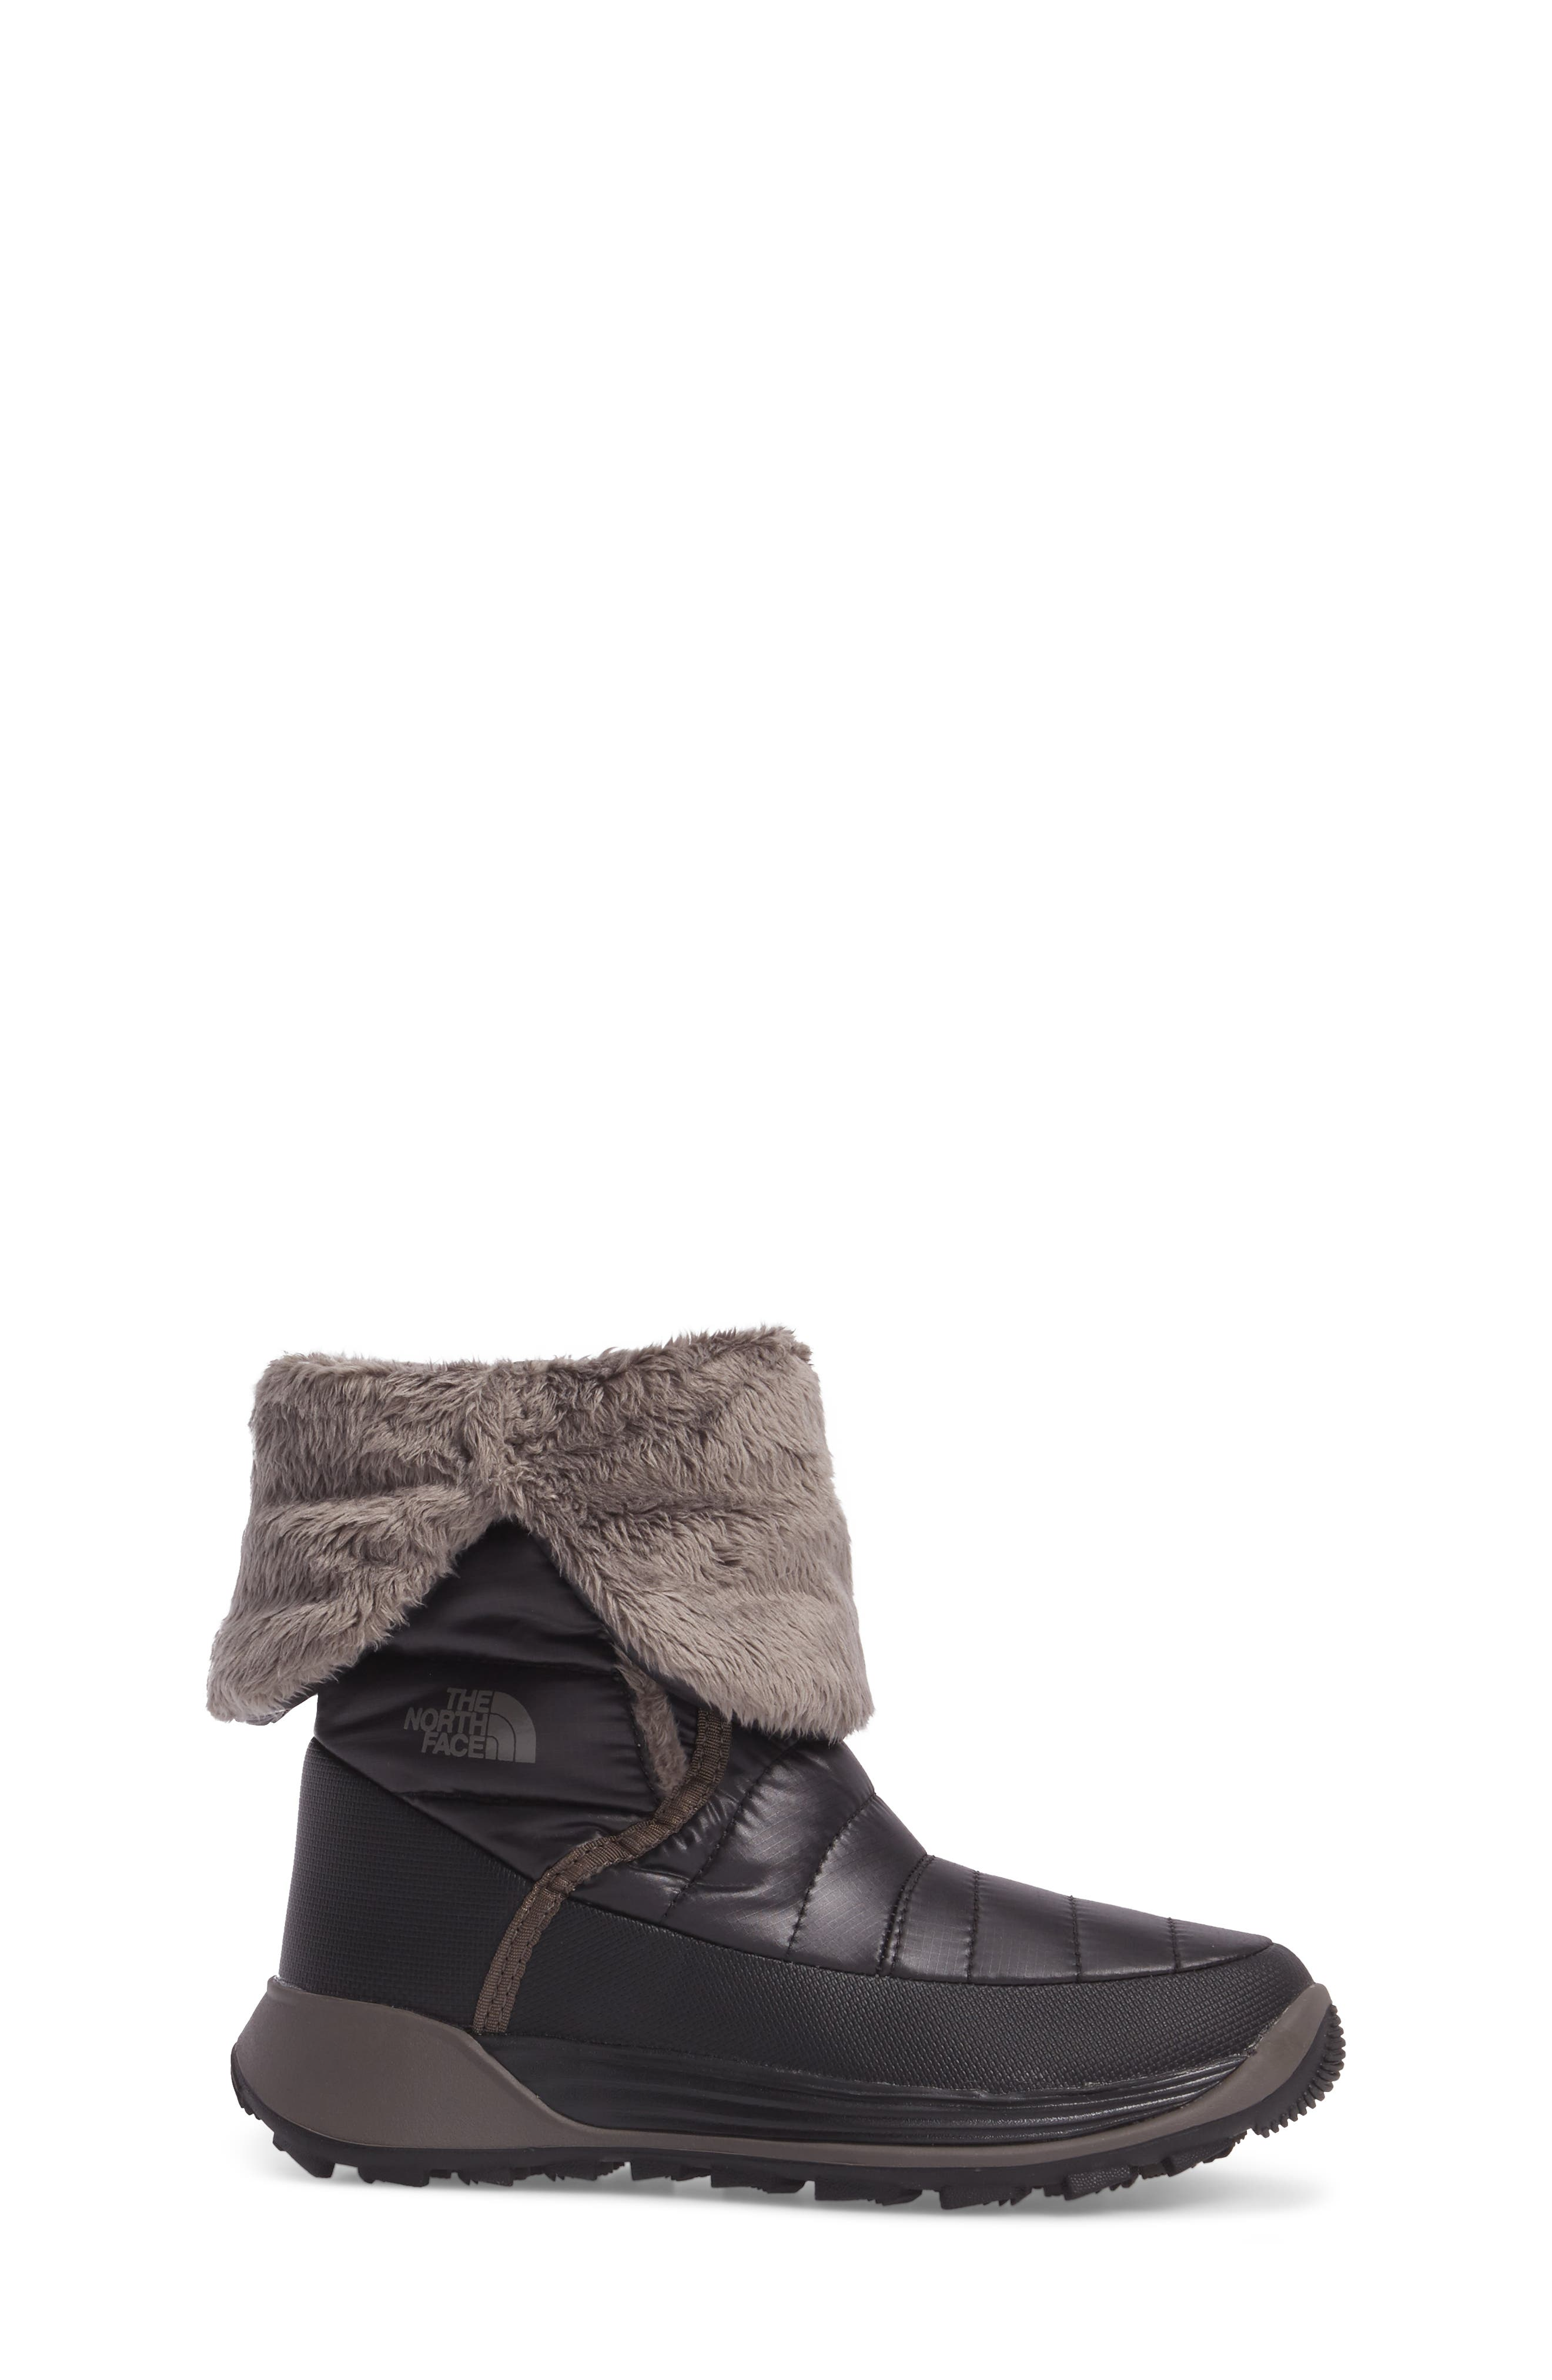 Amore II Water-Resistant Winter Boot,                             Alternate thumbnail 3, color,                             TNF BLACK/ DARK GULL GREY